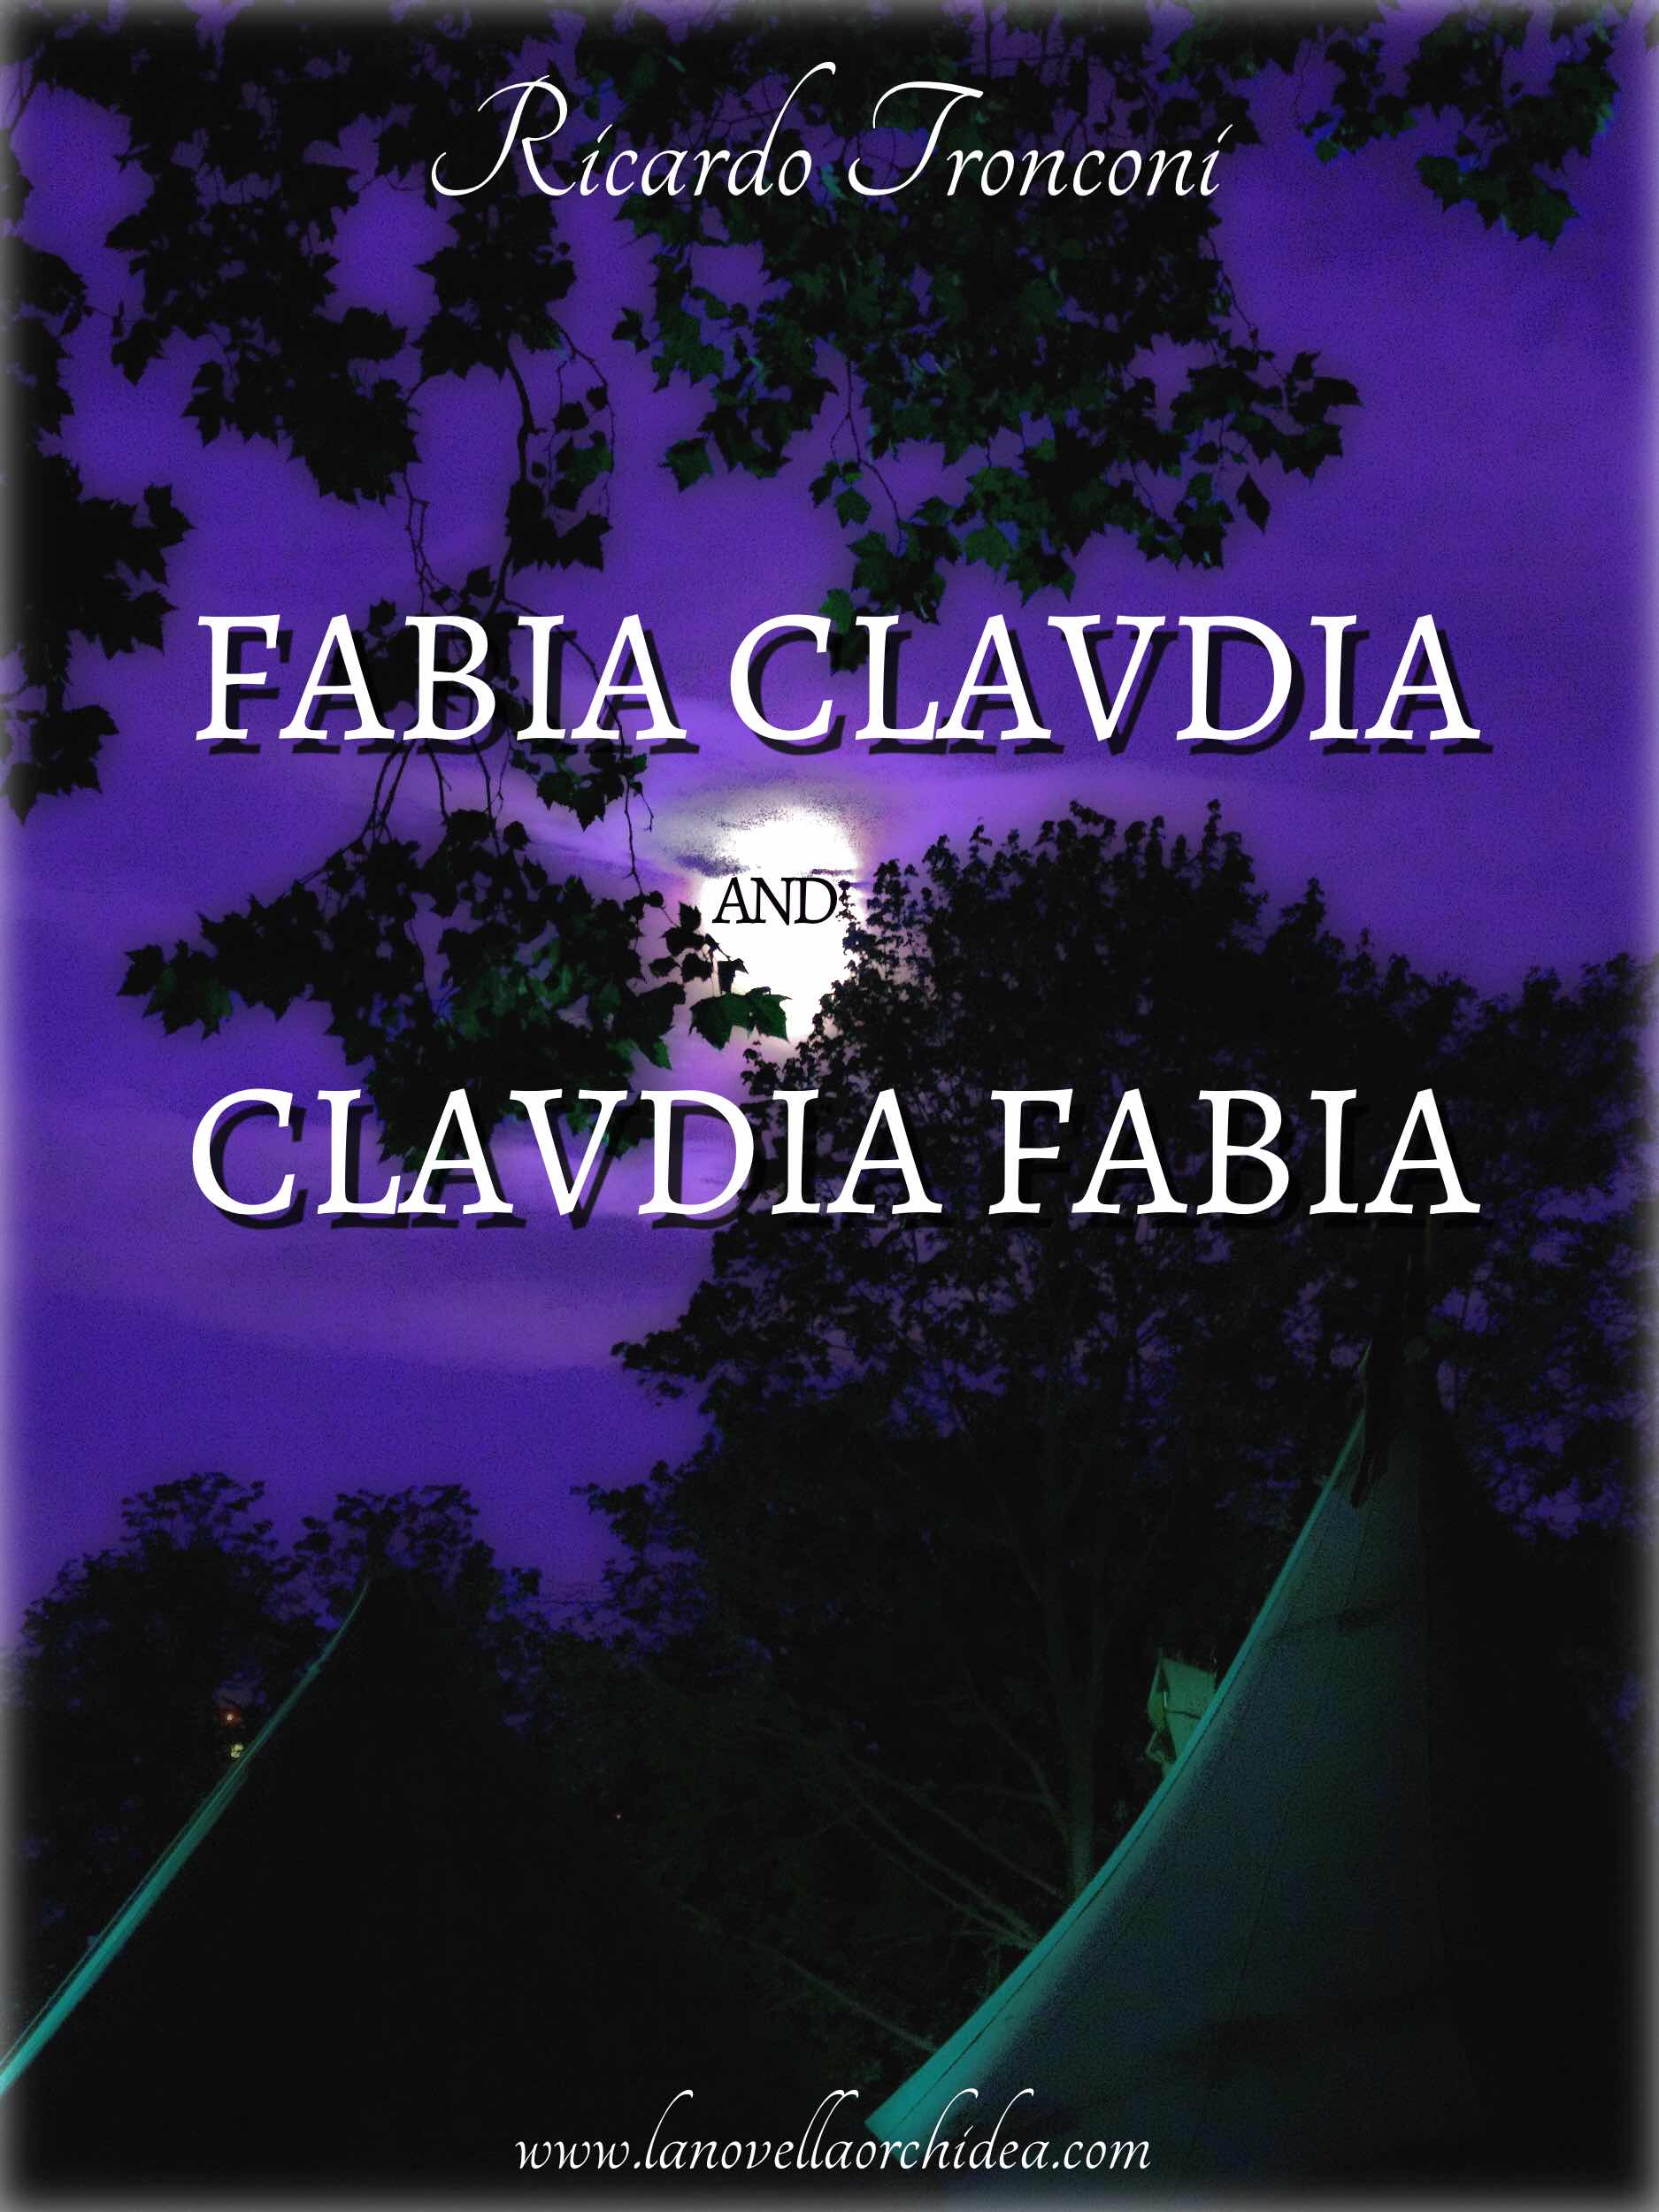 Fabia Claudia and Claudia Fabia in a novel version.